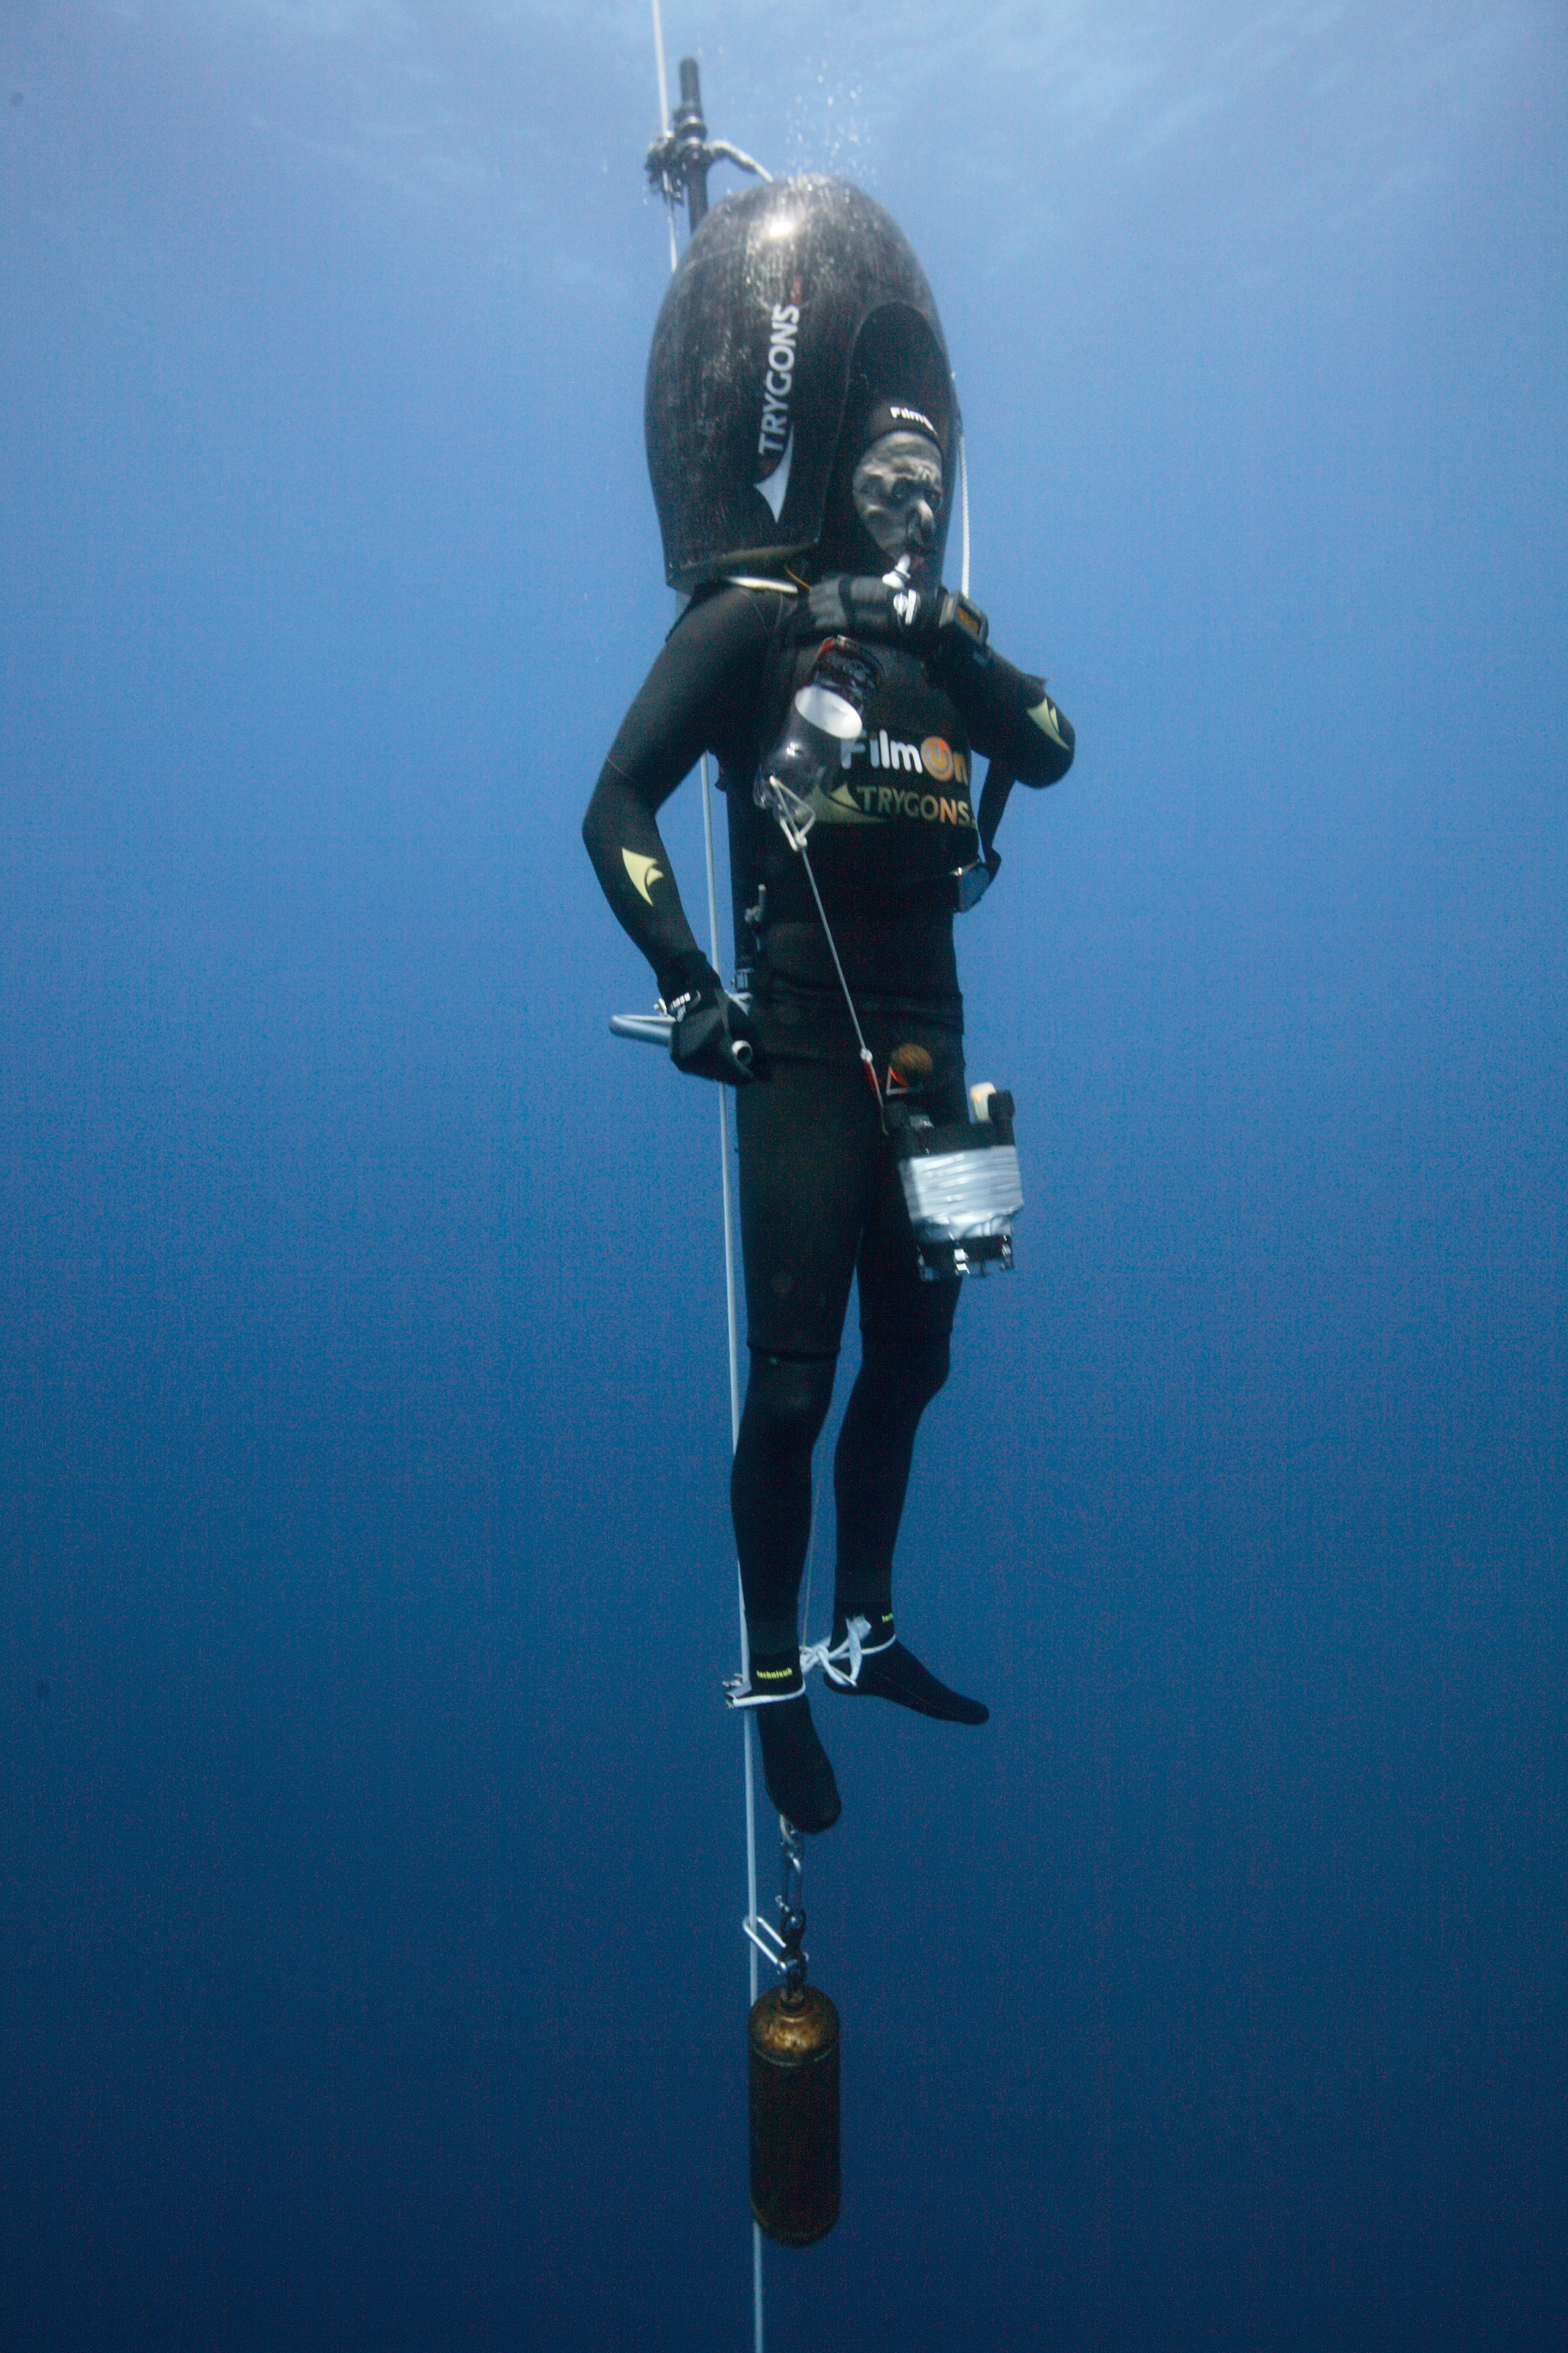 Herbert Nitsch descending during the 'No Limits'Freediving Record